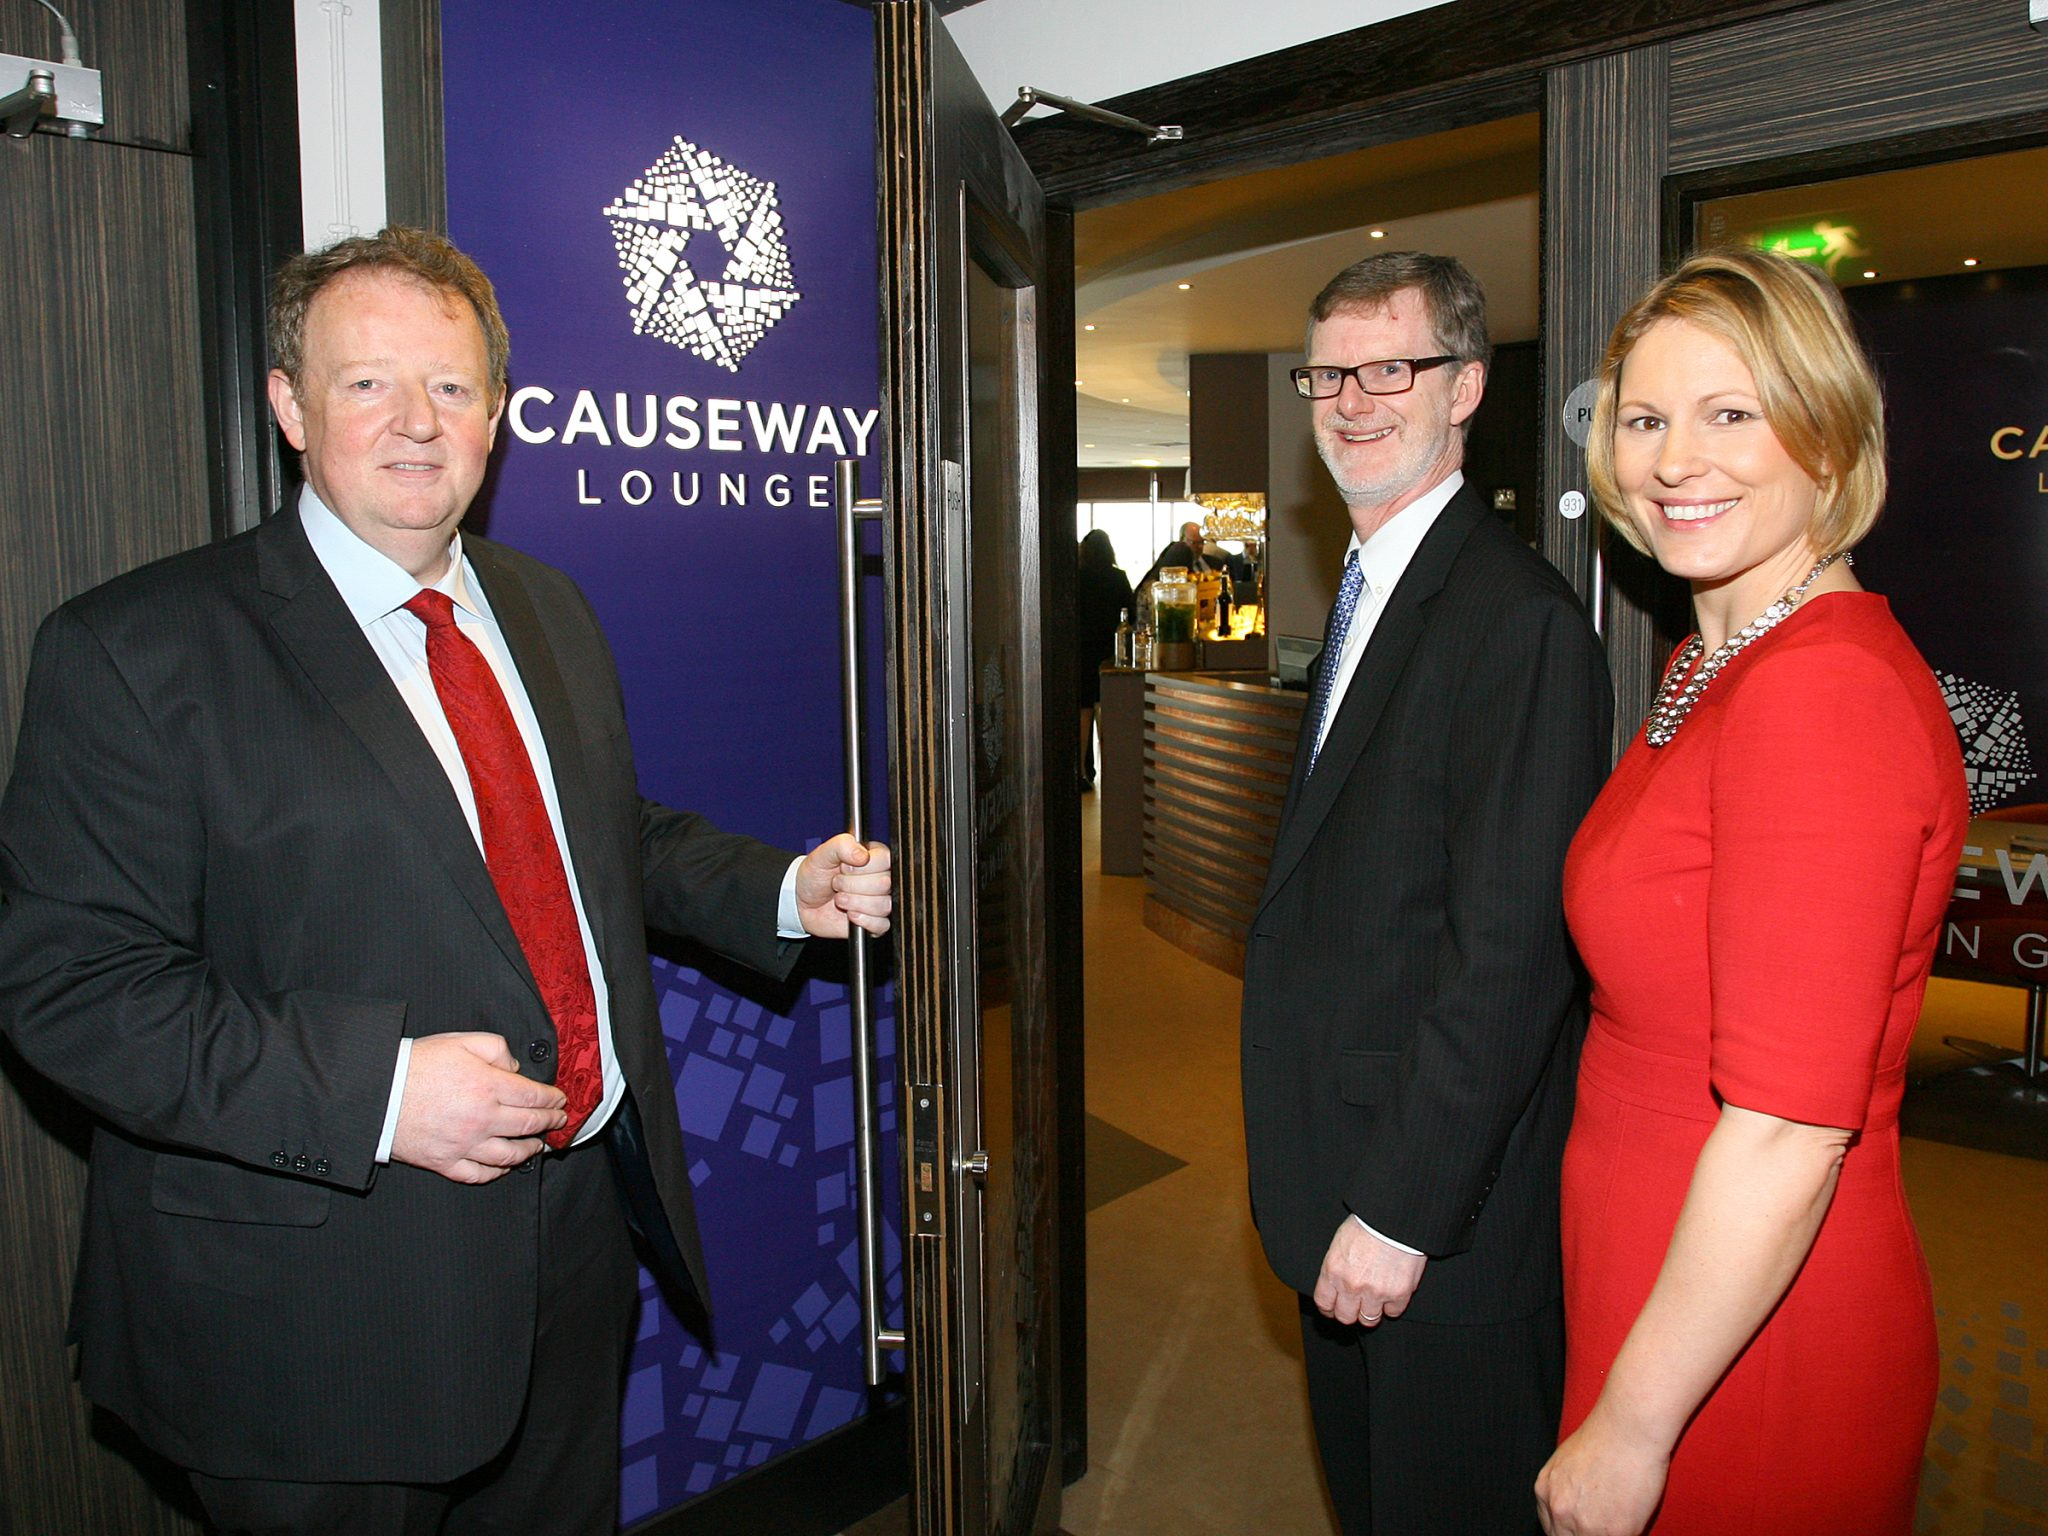 New Causeway Lounge for Belfast International  Airport